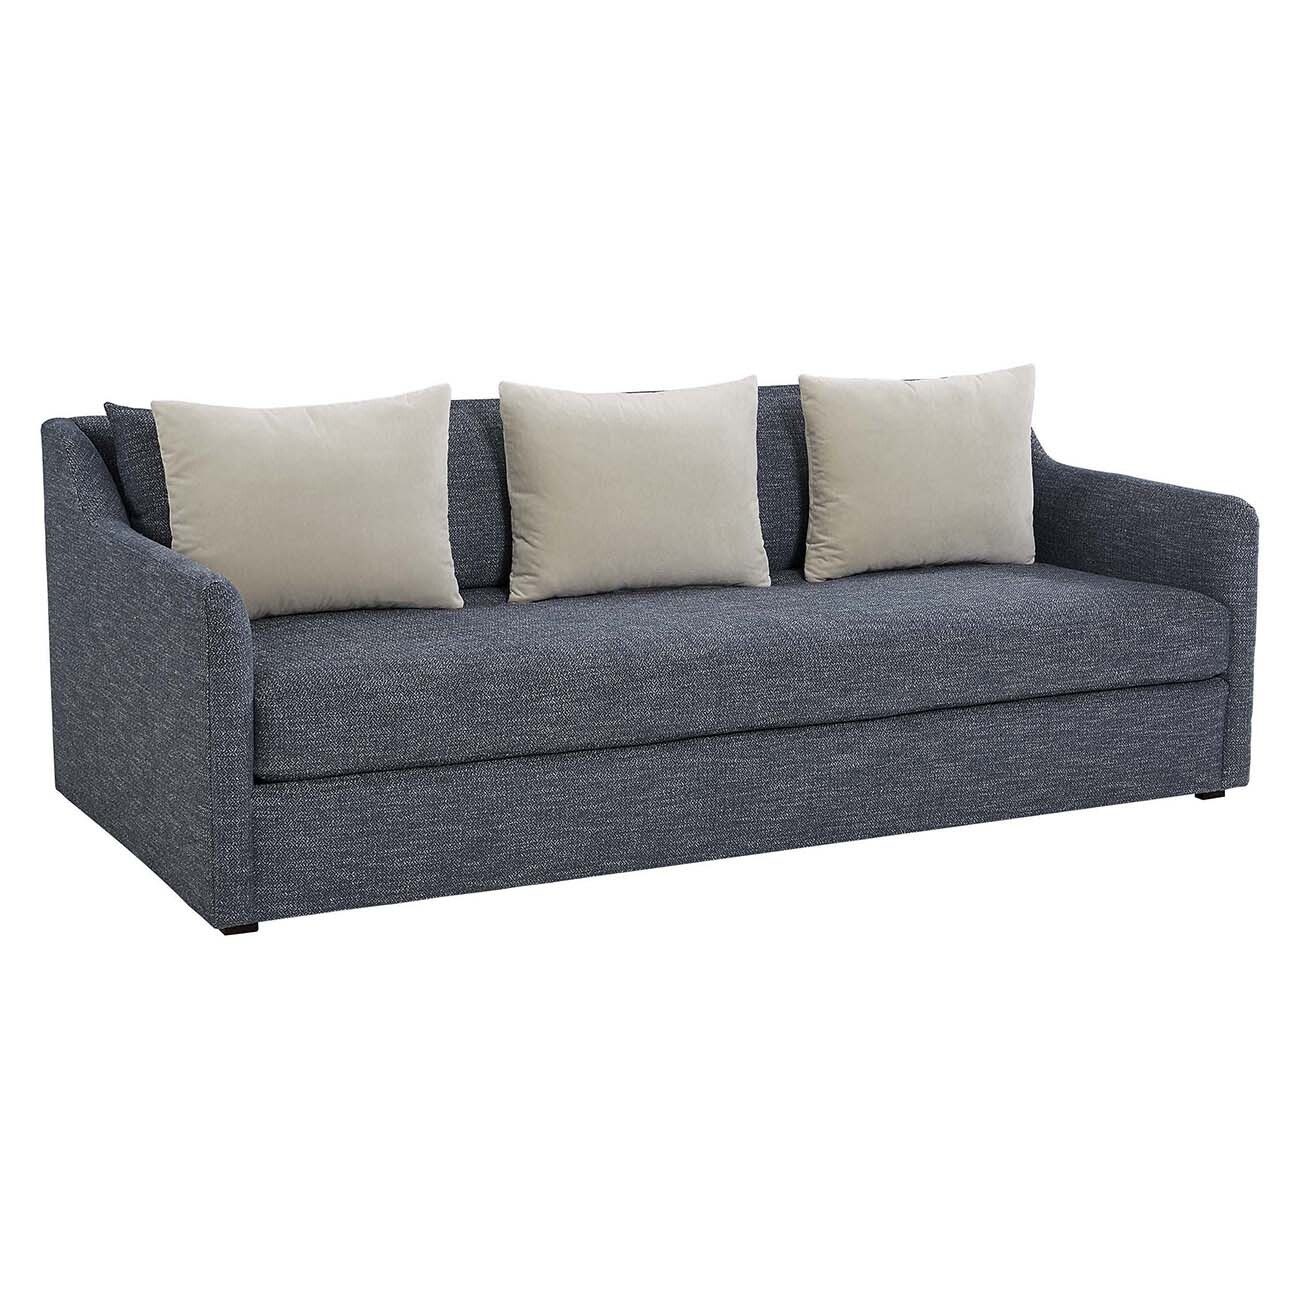 Taylor Guss Couch Hd Stearns &